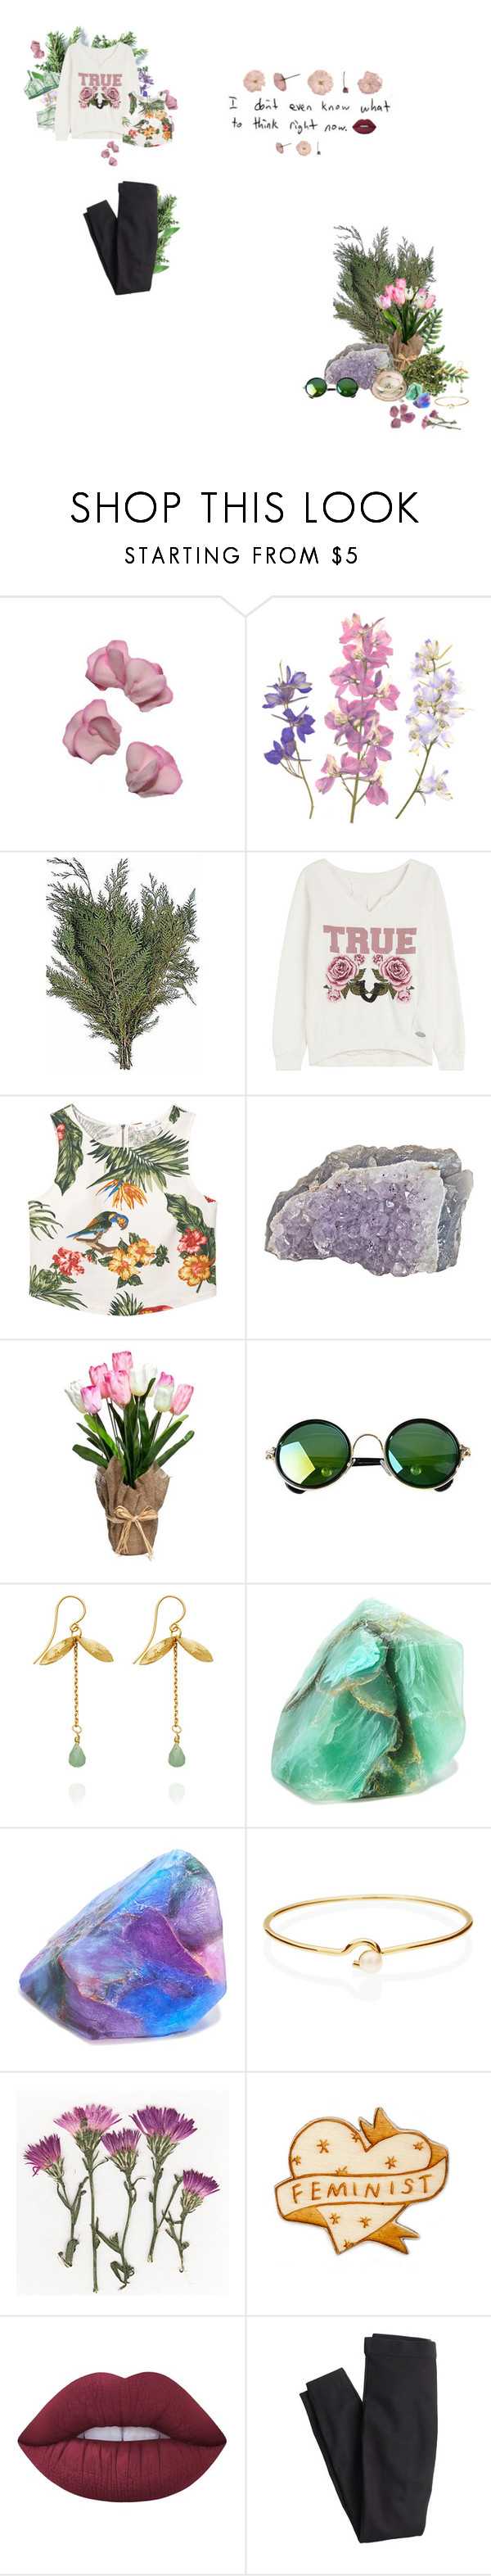 """""""Old Draft. . ."""" by brendaf123 ❤ liked on Polyvore featuring Sweet Pea by Stacy Frati, True Religion, MANGO, Catherine Zoraida, SoapRocks, Lime Crime and J.Crew"""